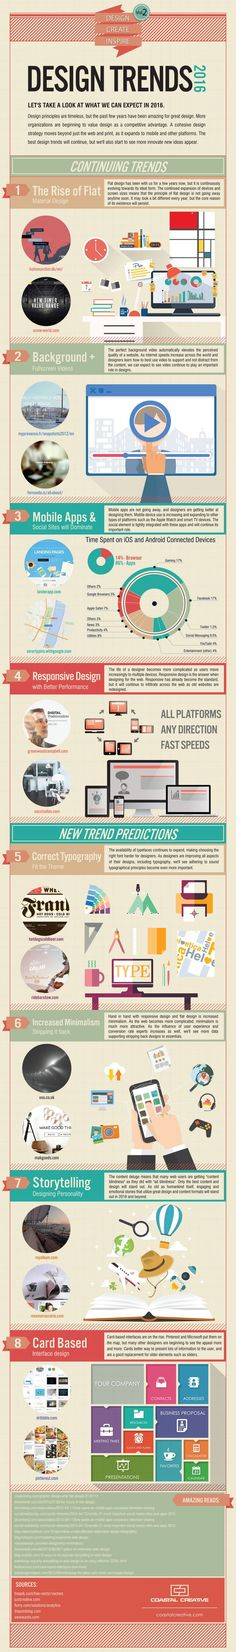 8 Web design trends for 2016 - Trends 2016 below and let us know your thoughts on these emerging trends and mainstays. Web Design Trends, Design Web, Visual Design, Website Design, Graphic Design Trends, Graphic Design Inspiration, Layout Design, Flat Design, Responsive Web Design